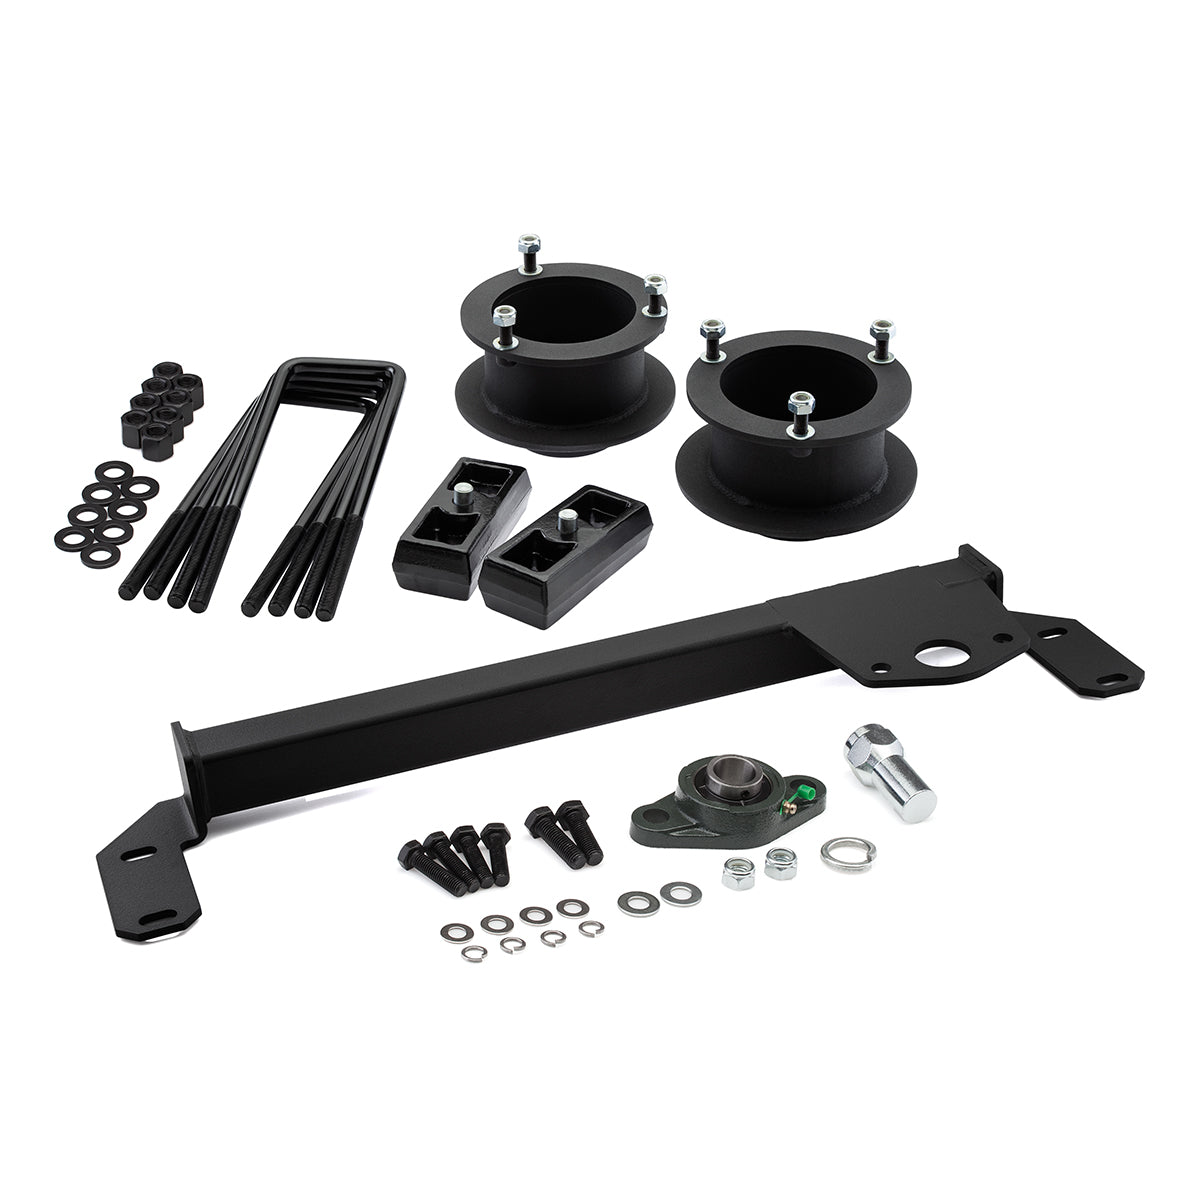 1994-2001 Dodge Ram 1500 4WD Full Lift Kit with Steering Stabilizer Bar